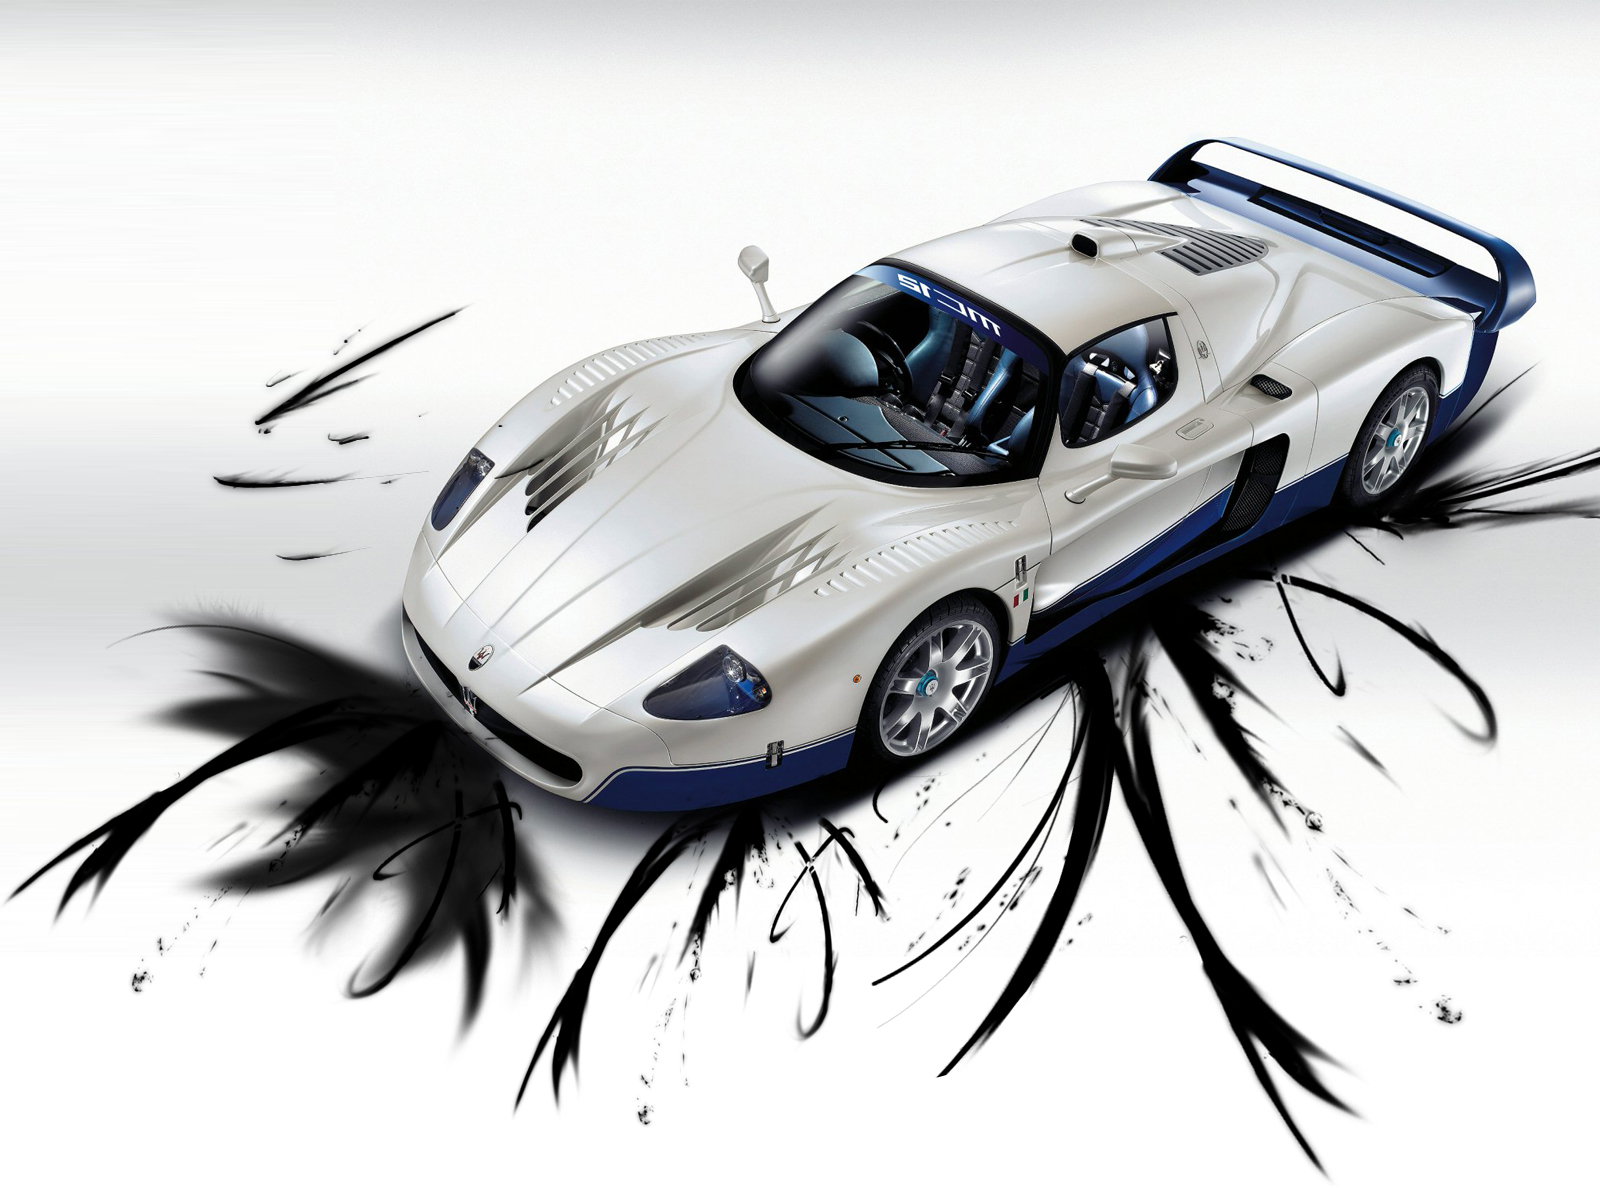 http://4.bp.blogspot.com/-8A0aX9RrMUc/TwCVJV03d3I/AAAAAAAAAGM/7TzwIPlMImU/s1600/Cool+cars+wallpapers+hd+1.jpg